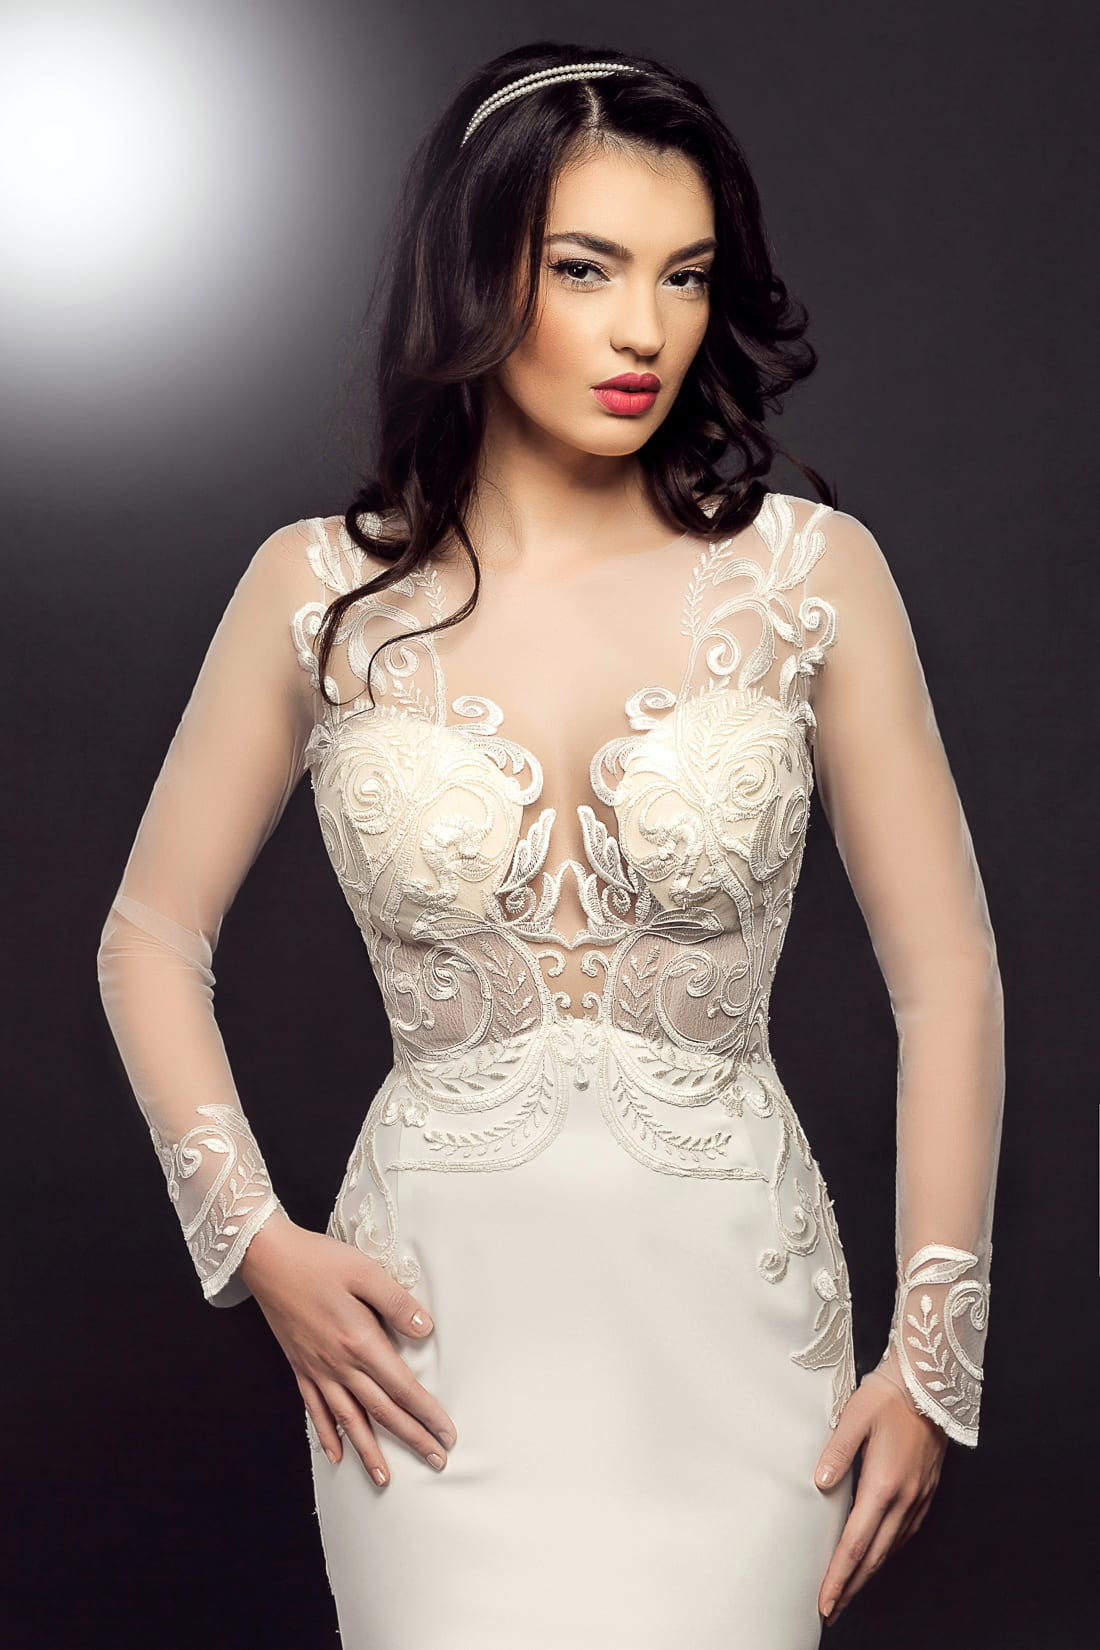 Pacifica Model - Colectia Dreams - Adora Sposa (3)